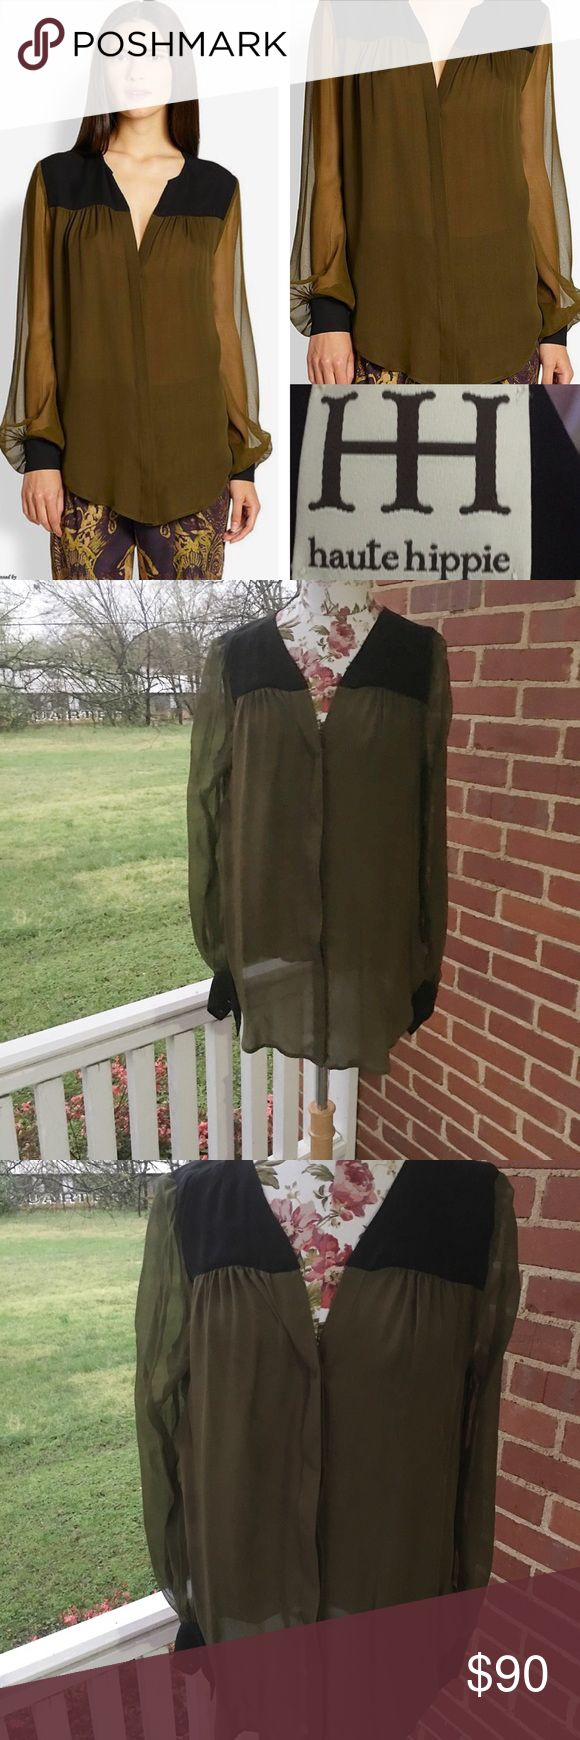 HAUTE HiPPIE blouse Haute Hippie olive blouse! EUC- sheer with great length- sold by Saks - would look amazing with leggings and boots! Haute Hippie Tops Tunics